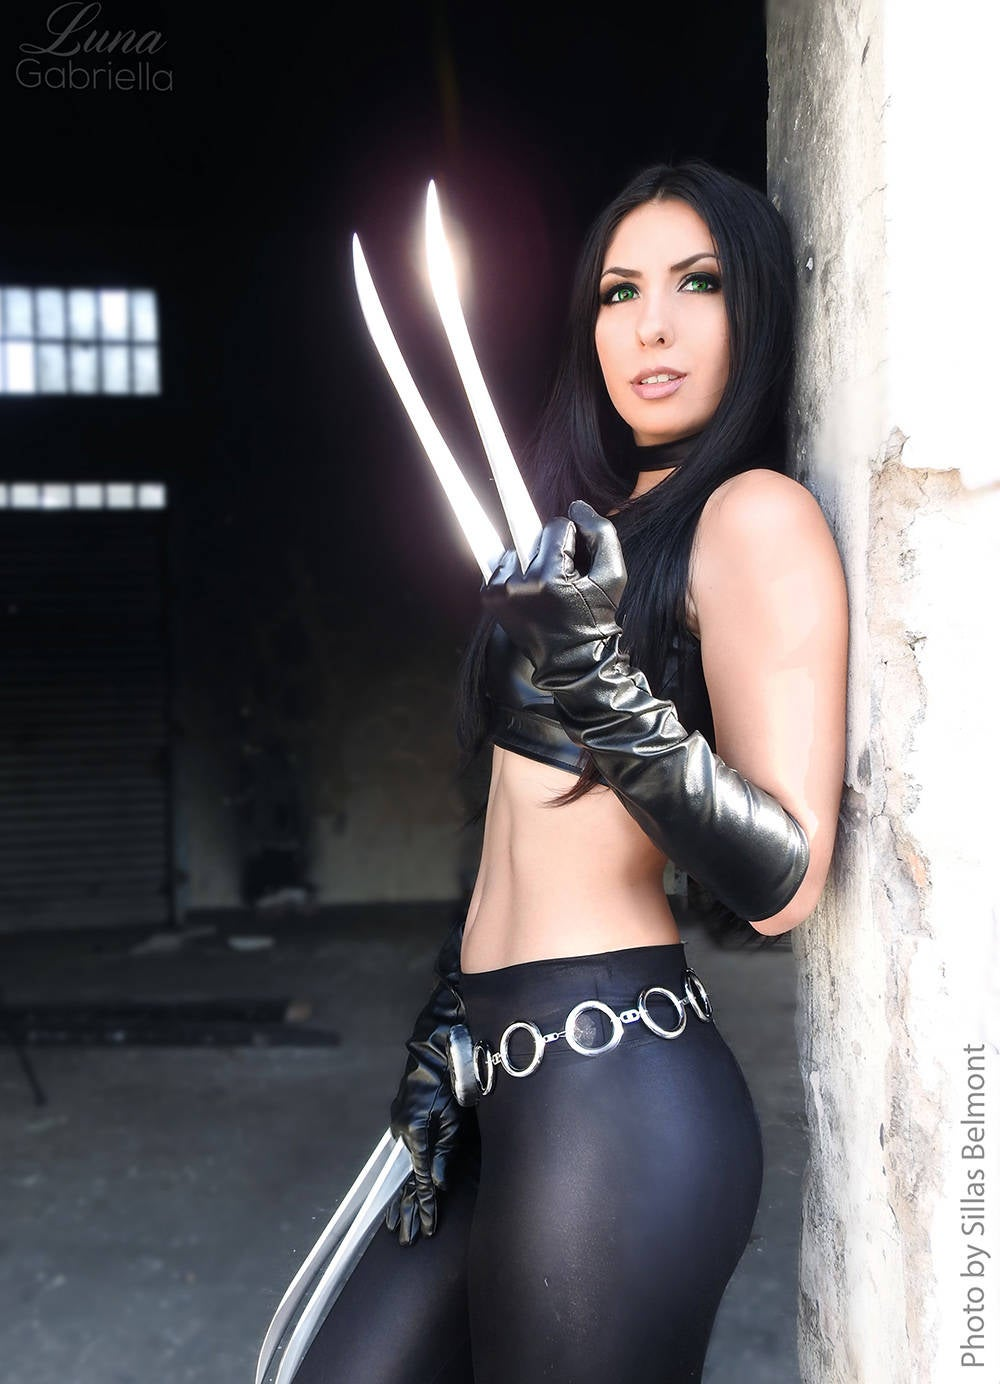 X-23-Fan-Cosplay-Friday-Luna-Gabriela-Sillas-Belmont03